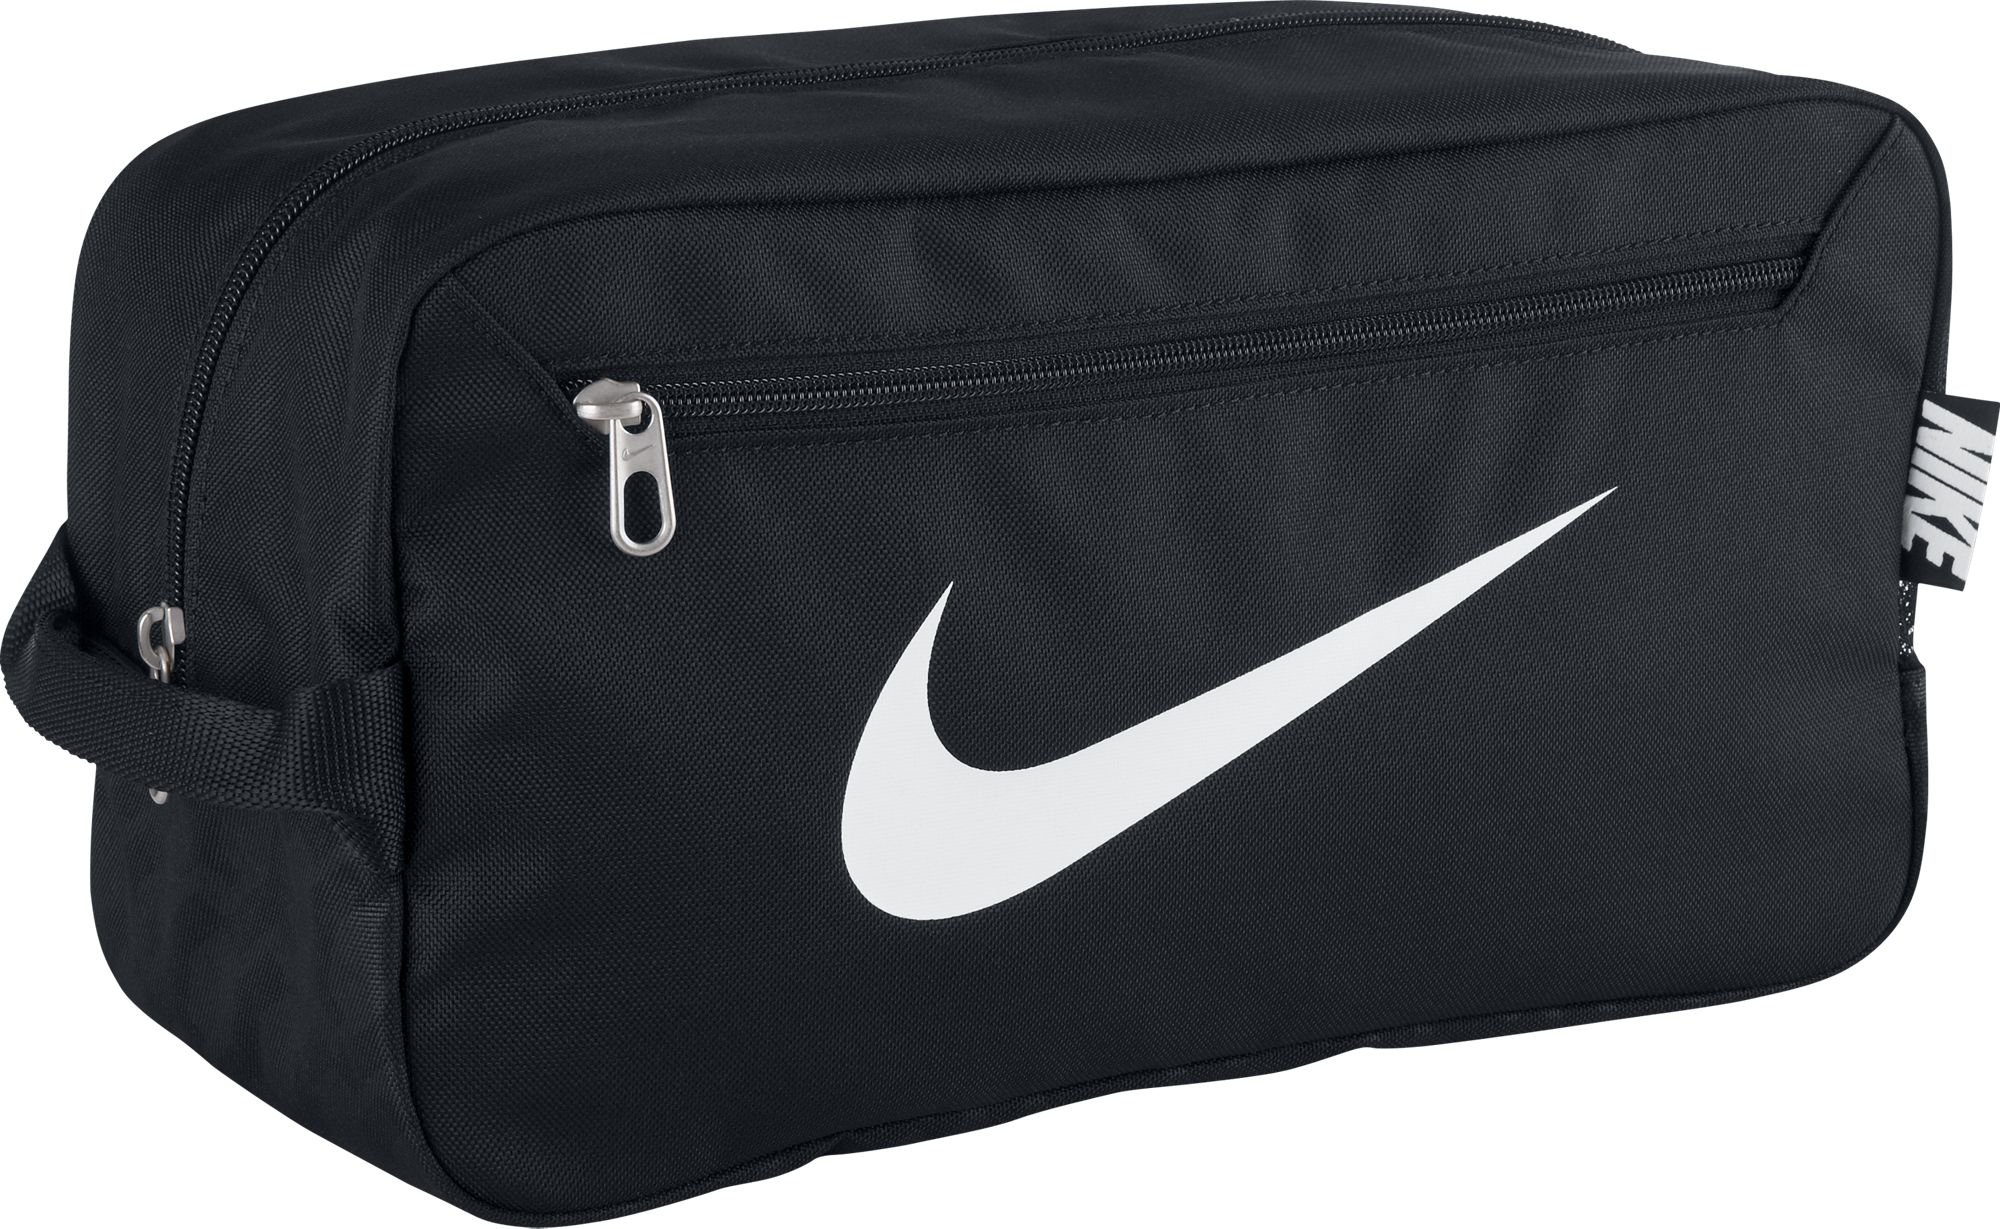 NIKE Men'S Brasilia 6 Shoe Bag - Black/Black/White, One Size